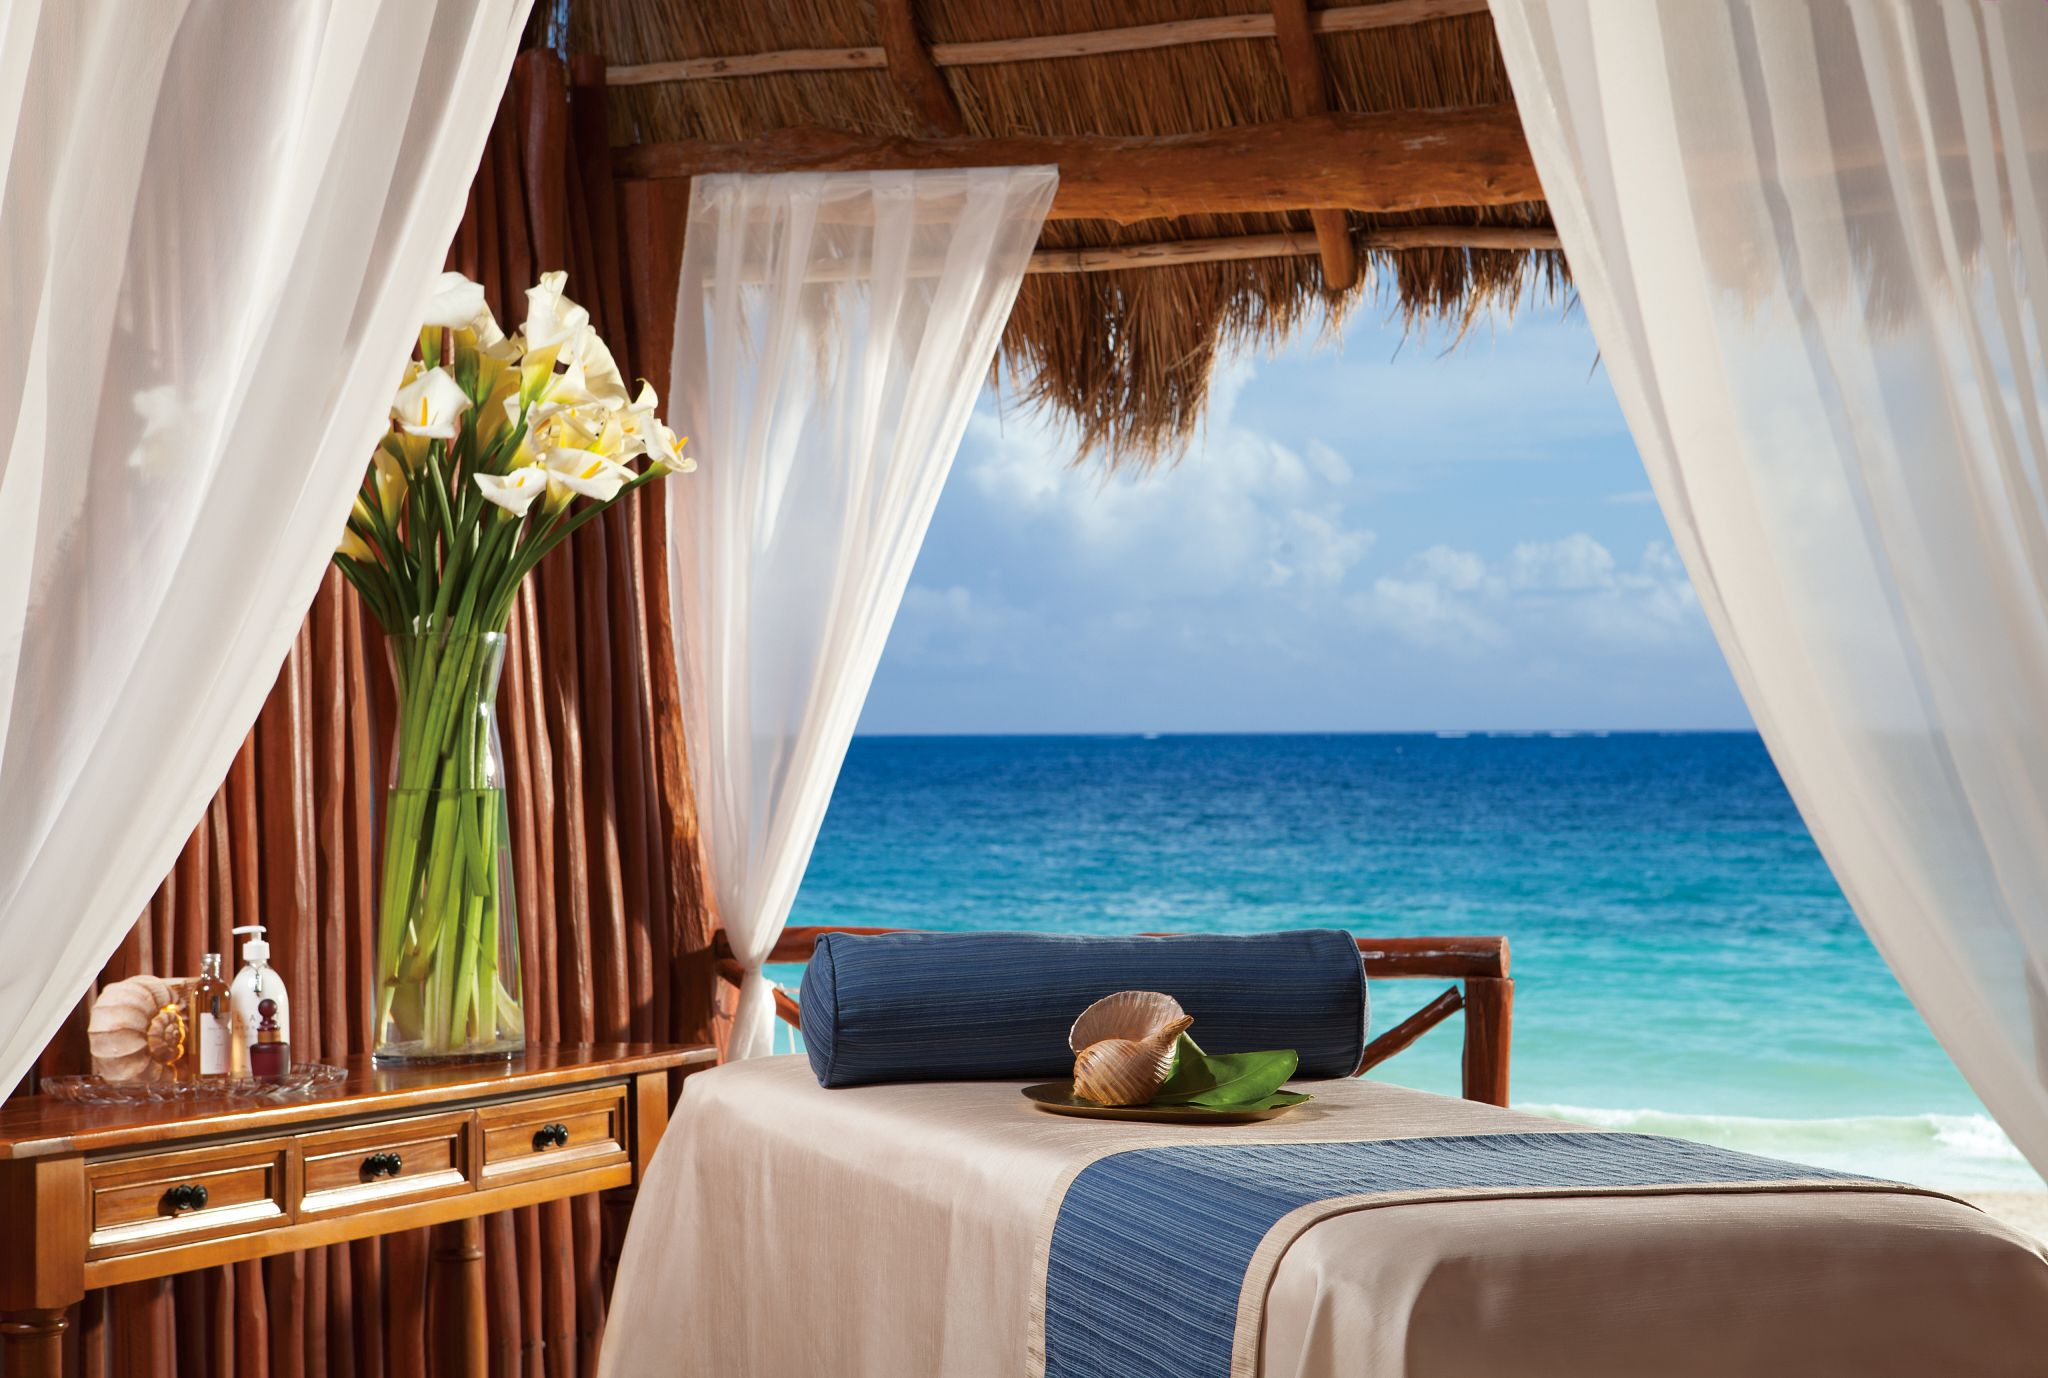 Oceanfront treatment room of a spa with a massage bed